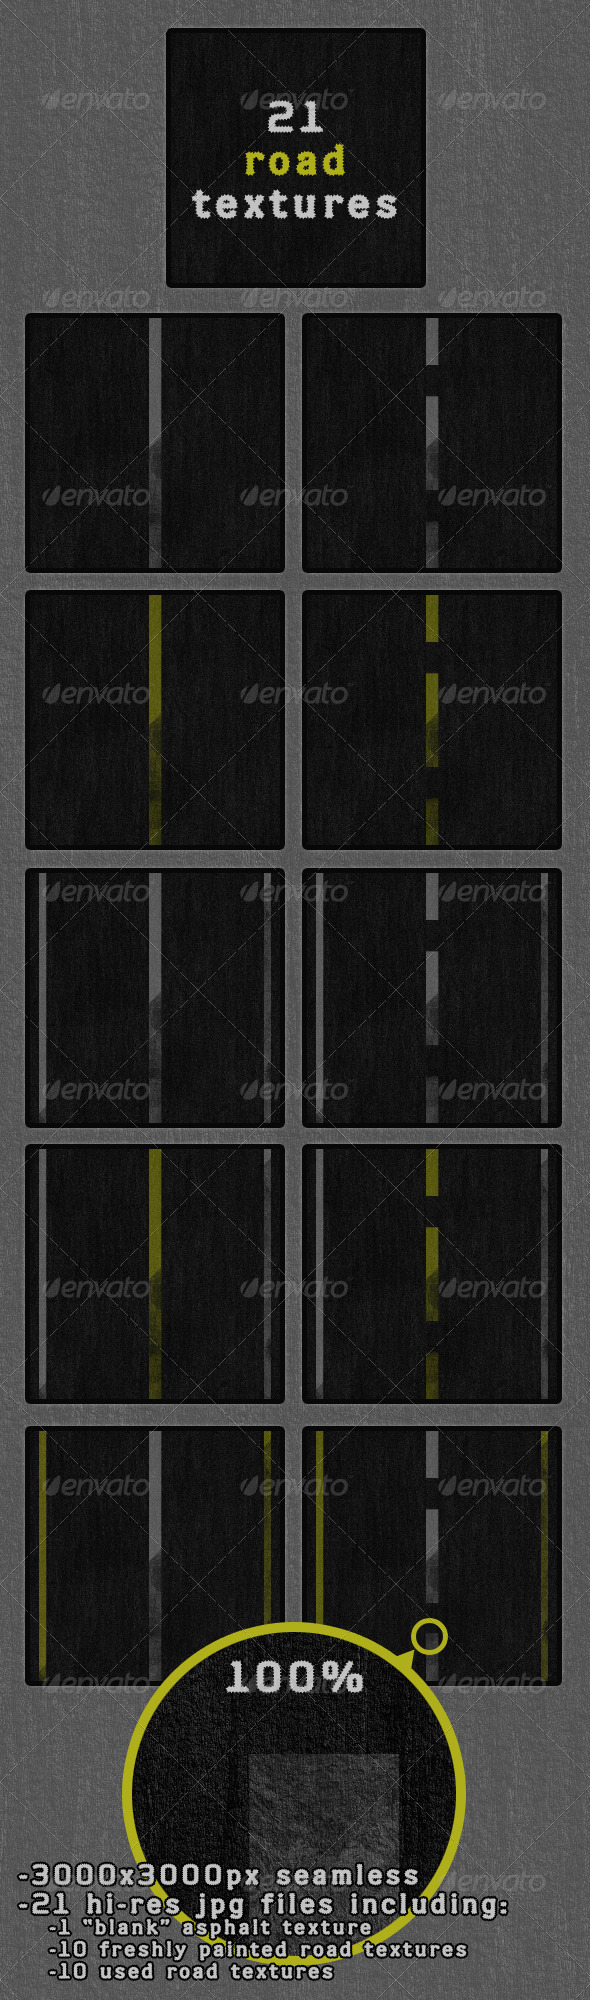 GraphicRiver 21 Road textures 6824912